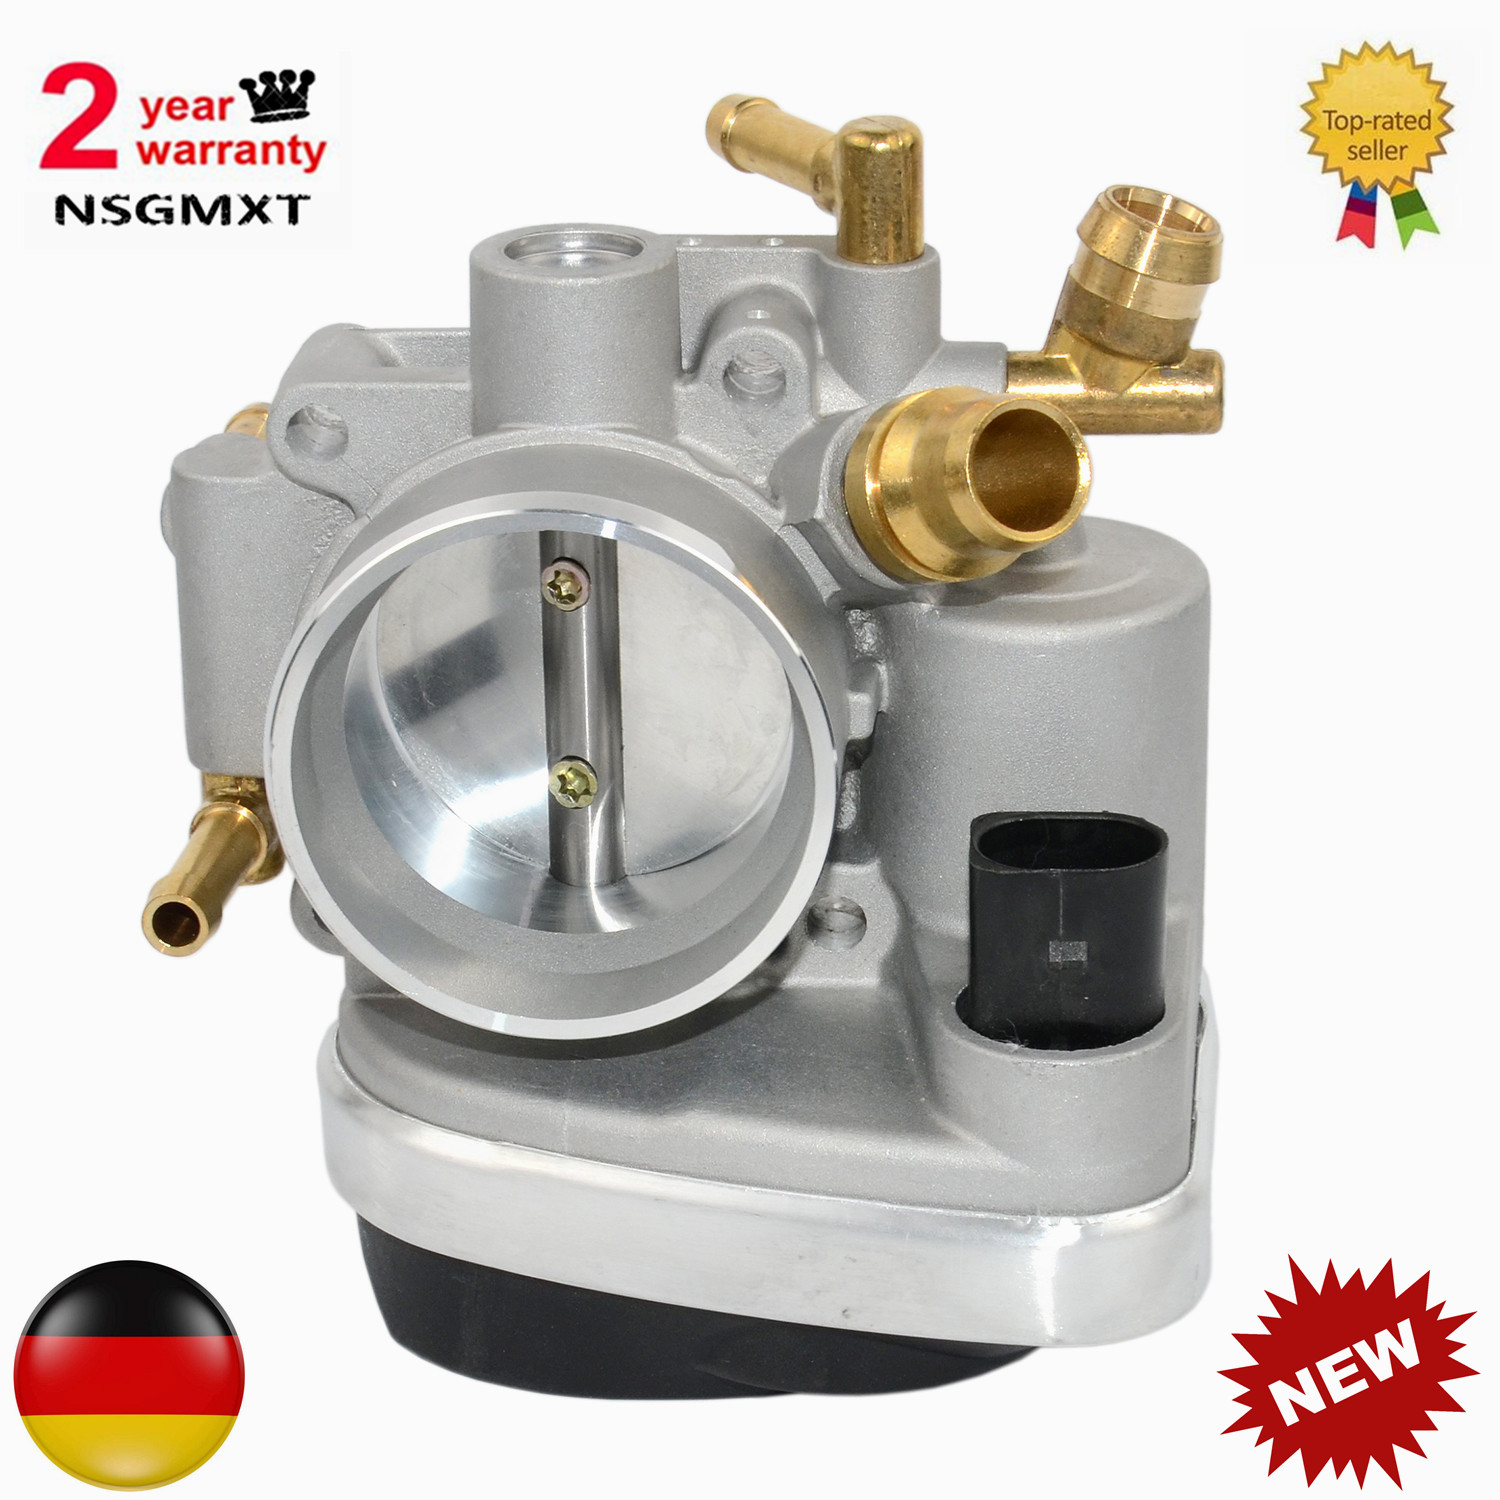 AP02 Throttle Body Assembly For Chevrolet Cruze/Opel Astra H Zafira B/Vauxhall Zafira MK2 Astra TwinTop Astravan MK5/VW EOS